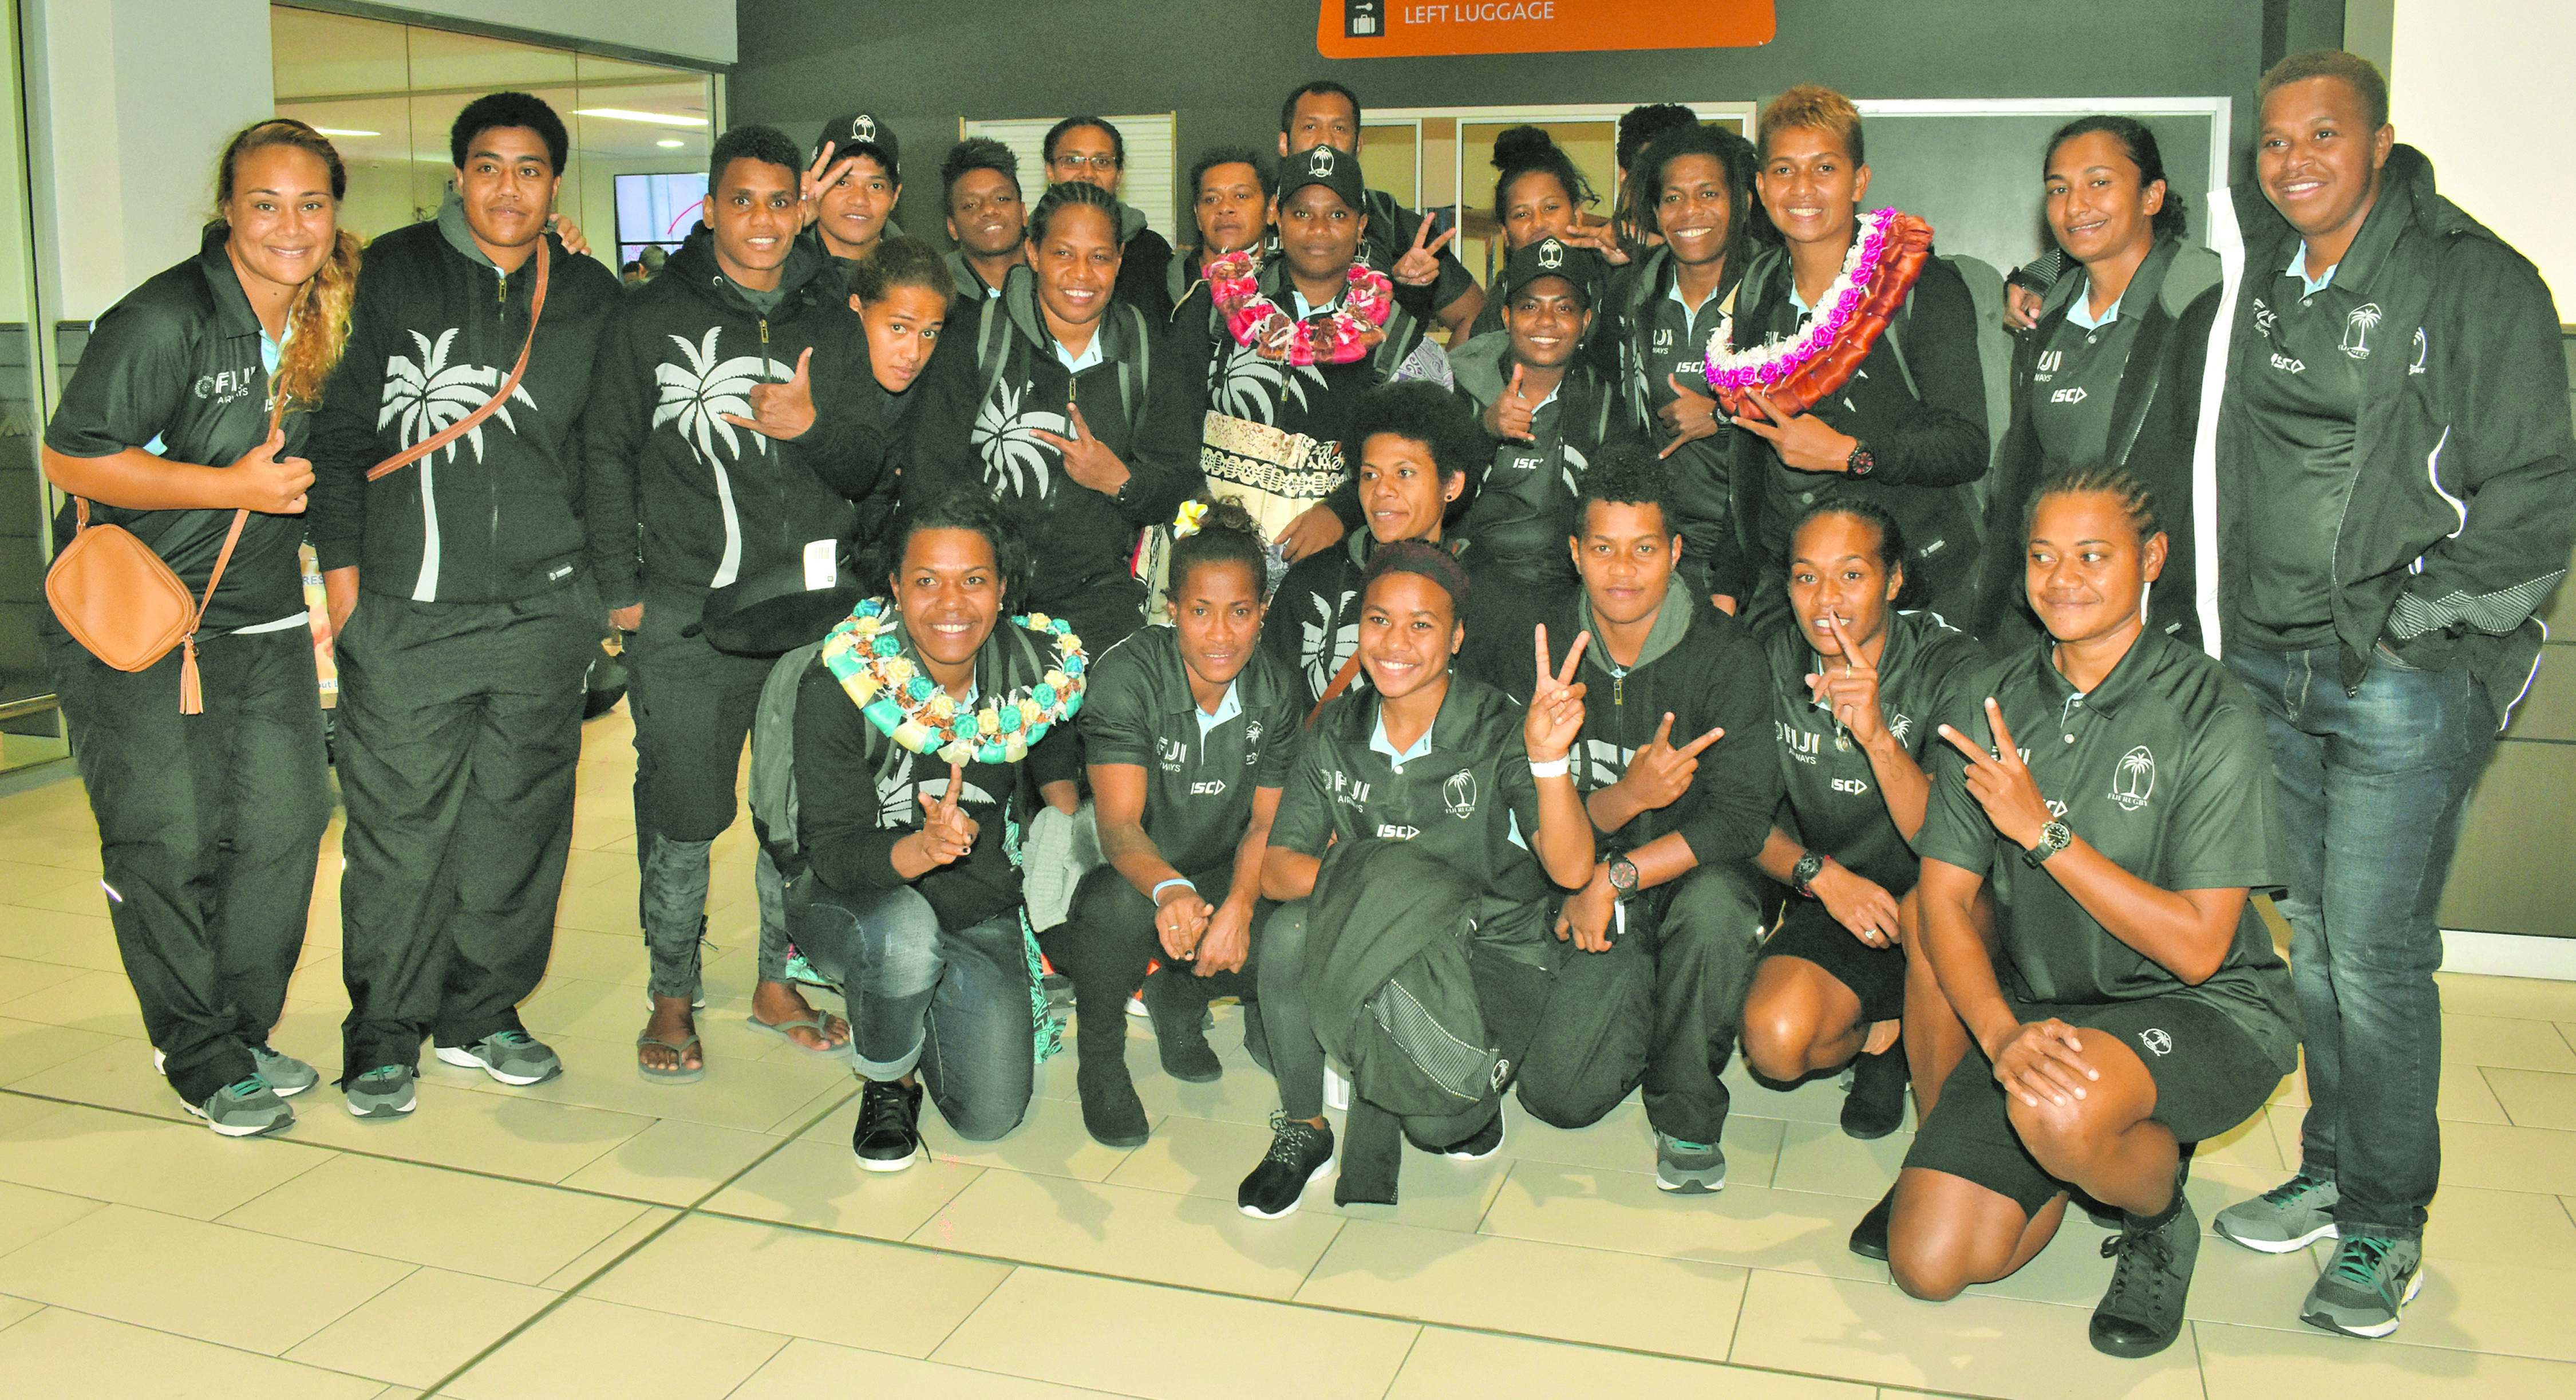 Fiji Airways Fijiana XVs players and officials at Nadi International Airport on June 17, 2018. The Ro Alifereti Doviverata- coached side returned home unbeaten from their tour. Photo: Waisea Nasokia